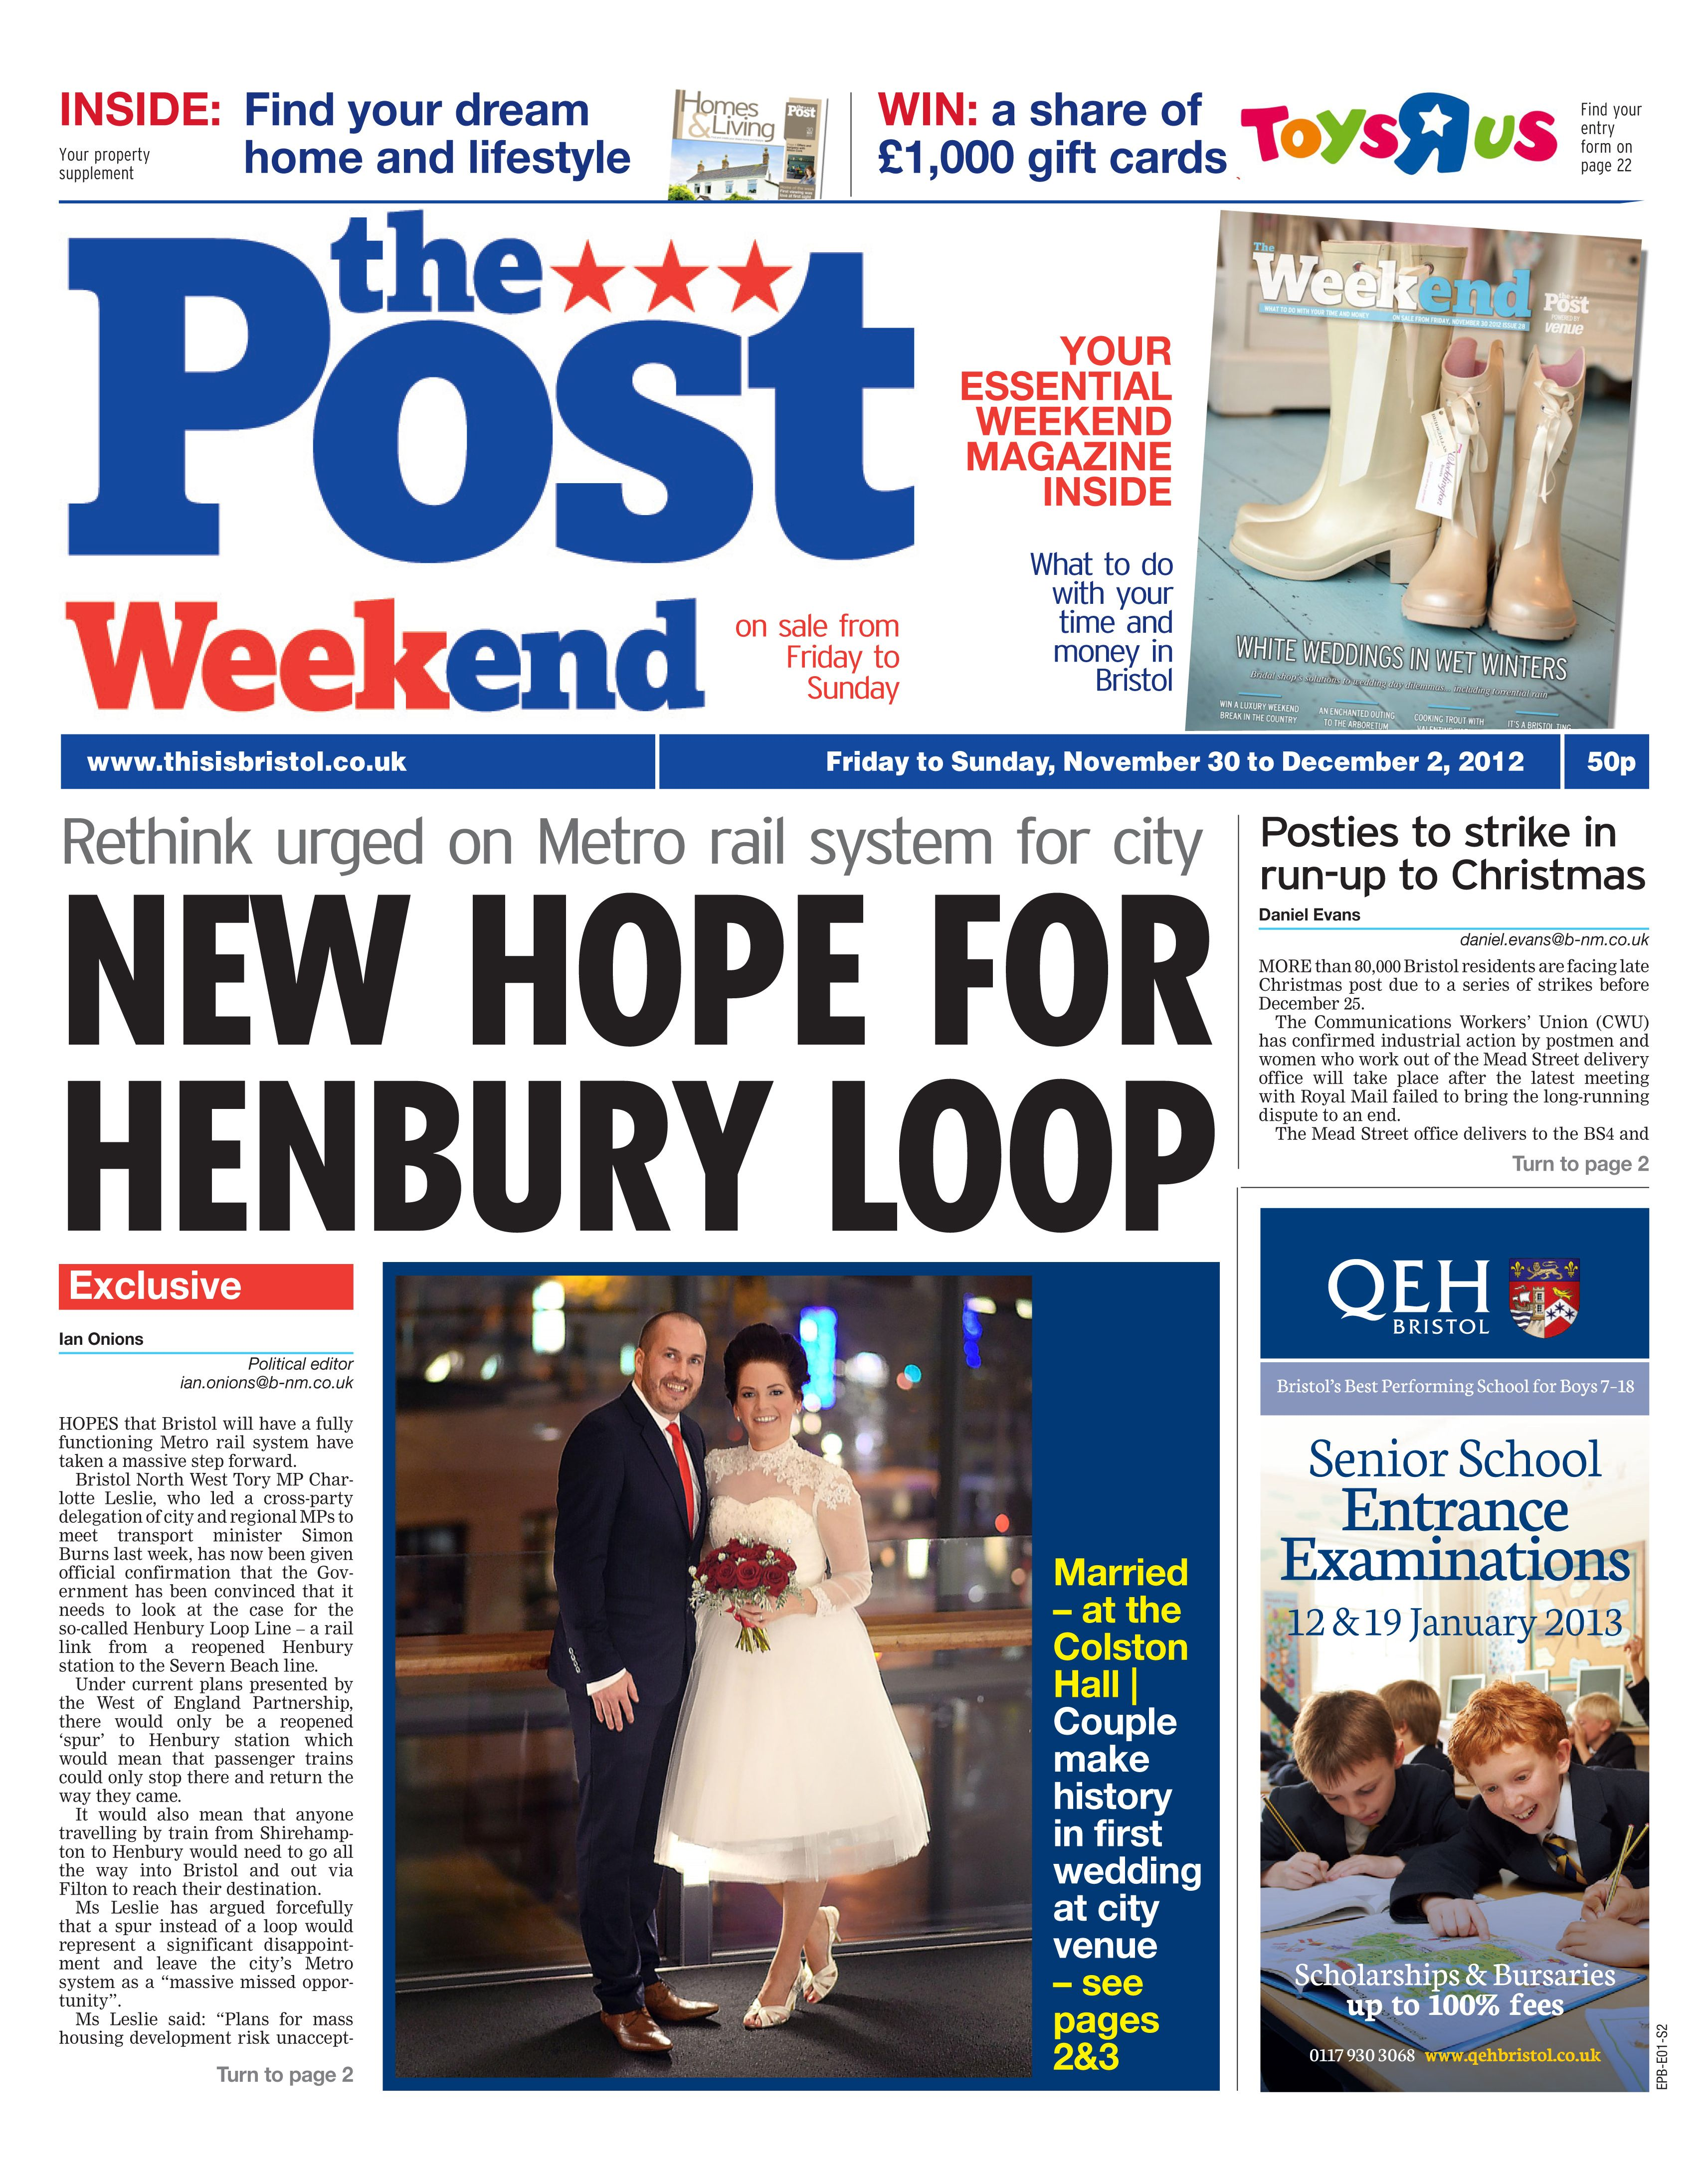 Colston Hall wedding on the front page of the Bristol Evening Post